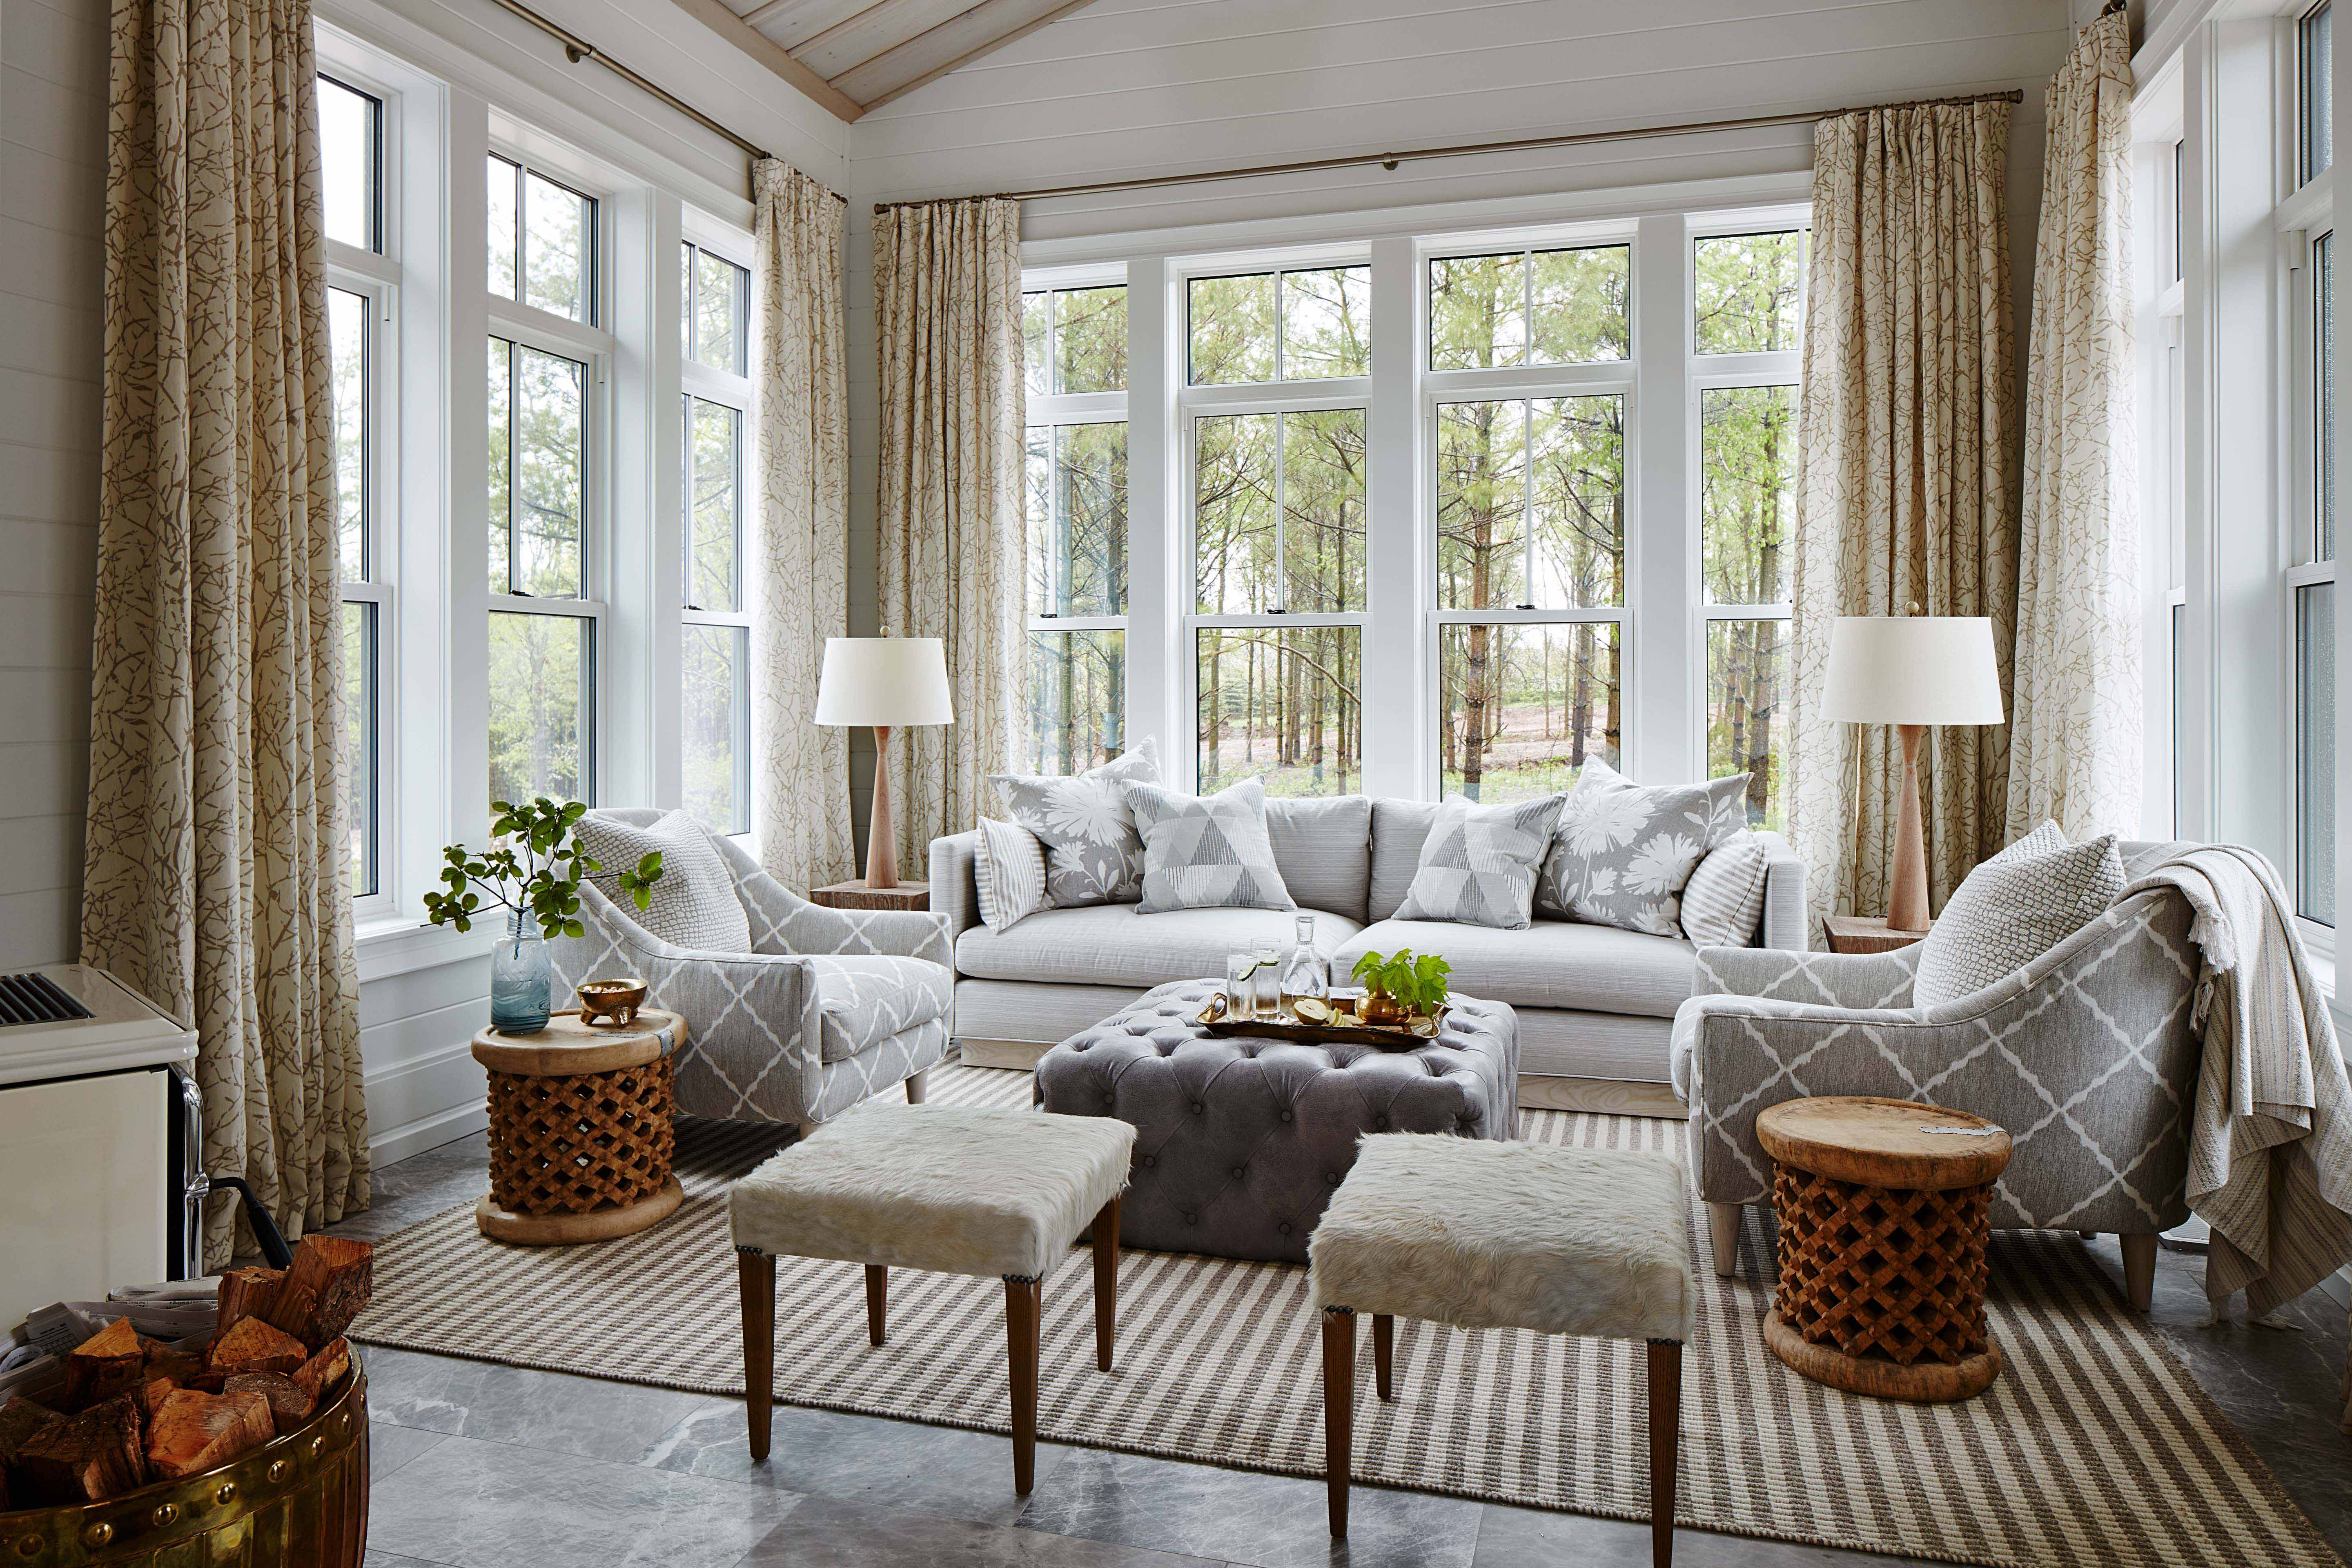 Take in the views and the gorgeous decorative details in a sunroom meant to impress. #SarahRichardson #sunroom #traditionaldecor